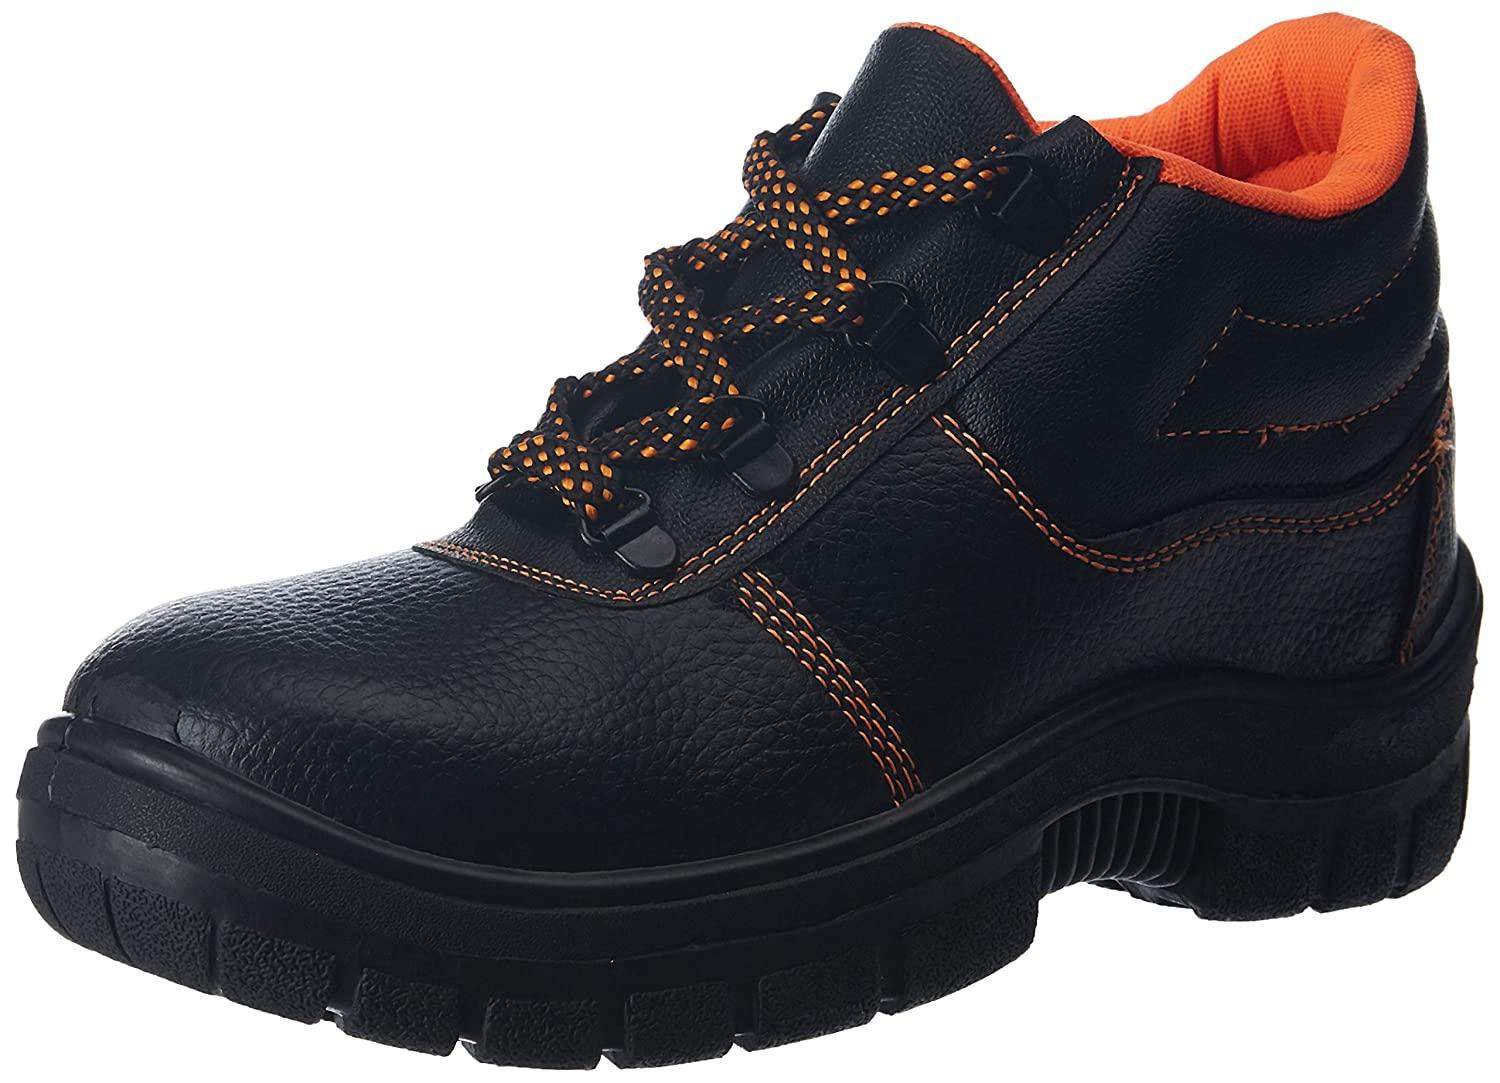 40467e4663a6 Safety Shoes  Buy Safety Shoes online at best prices in India ...